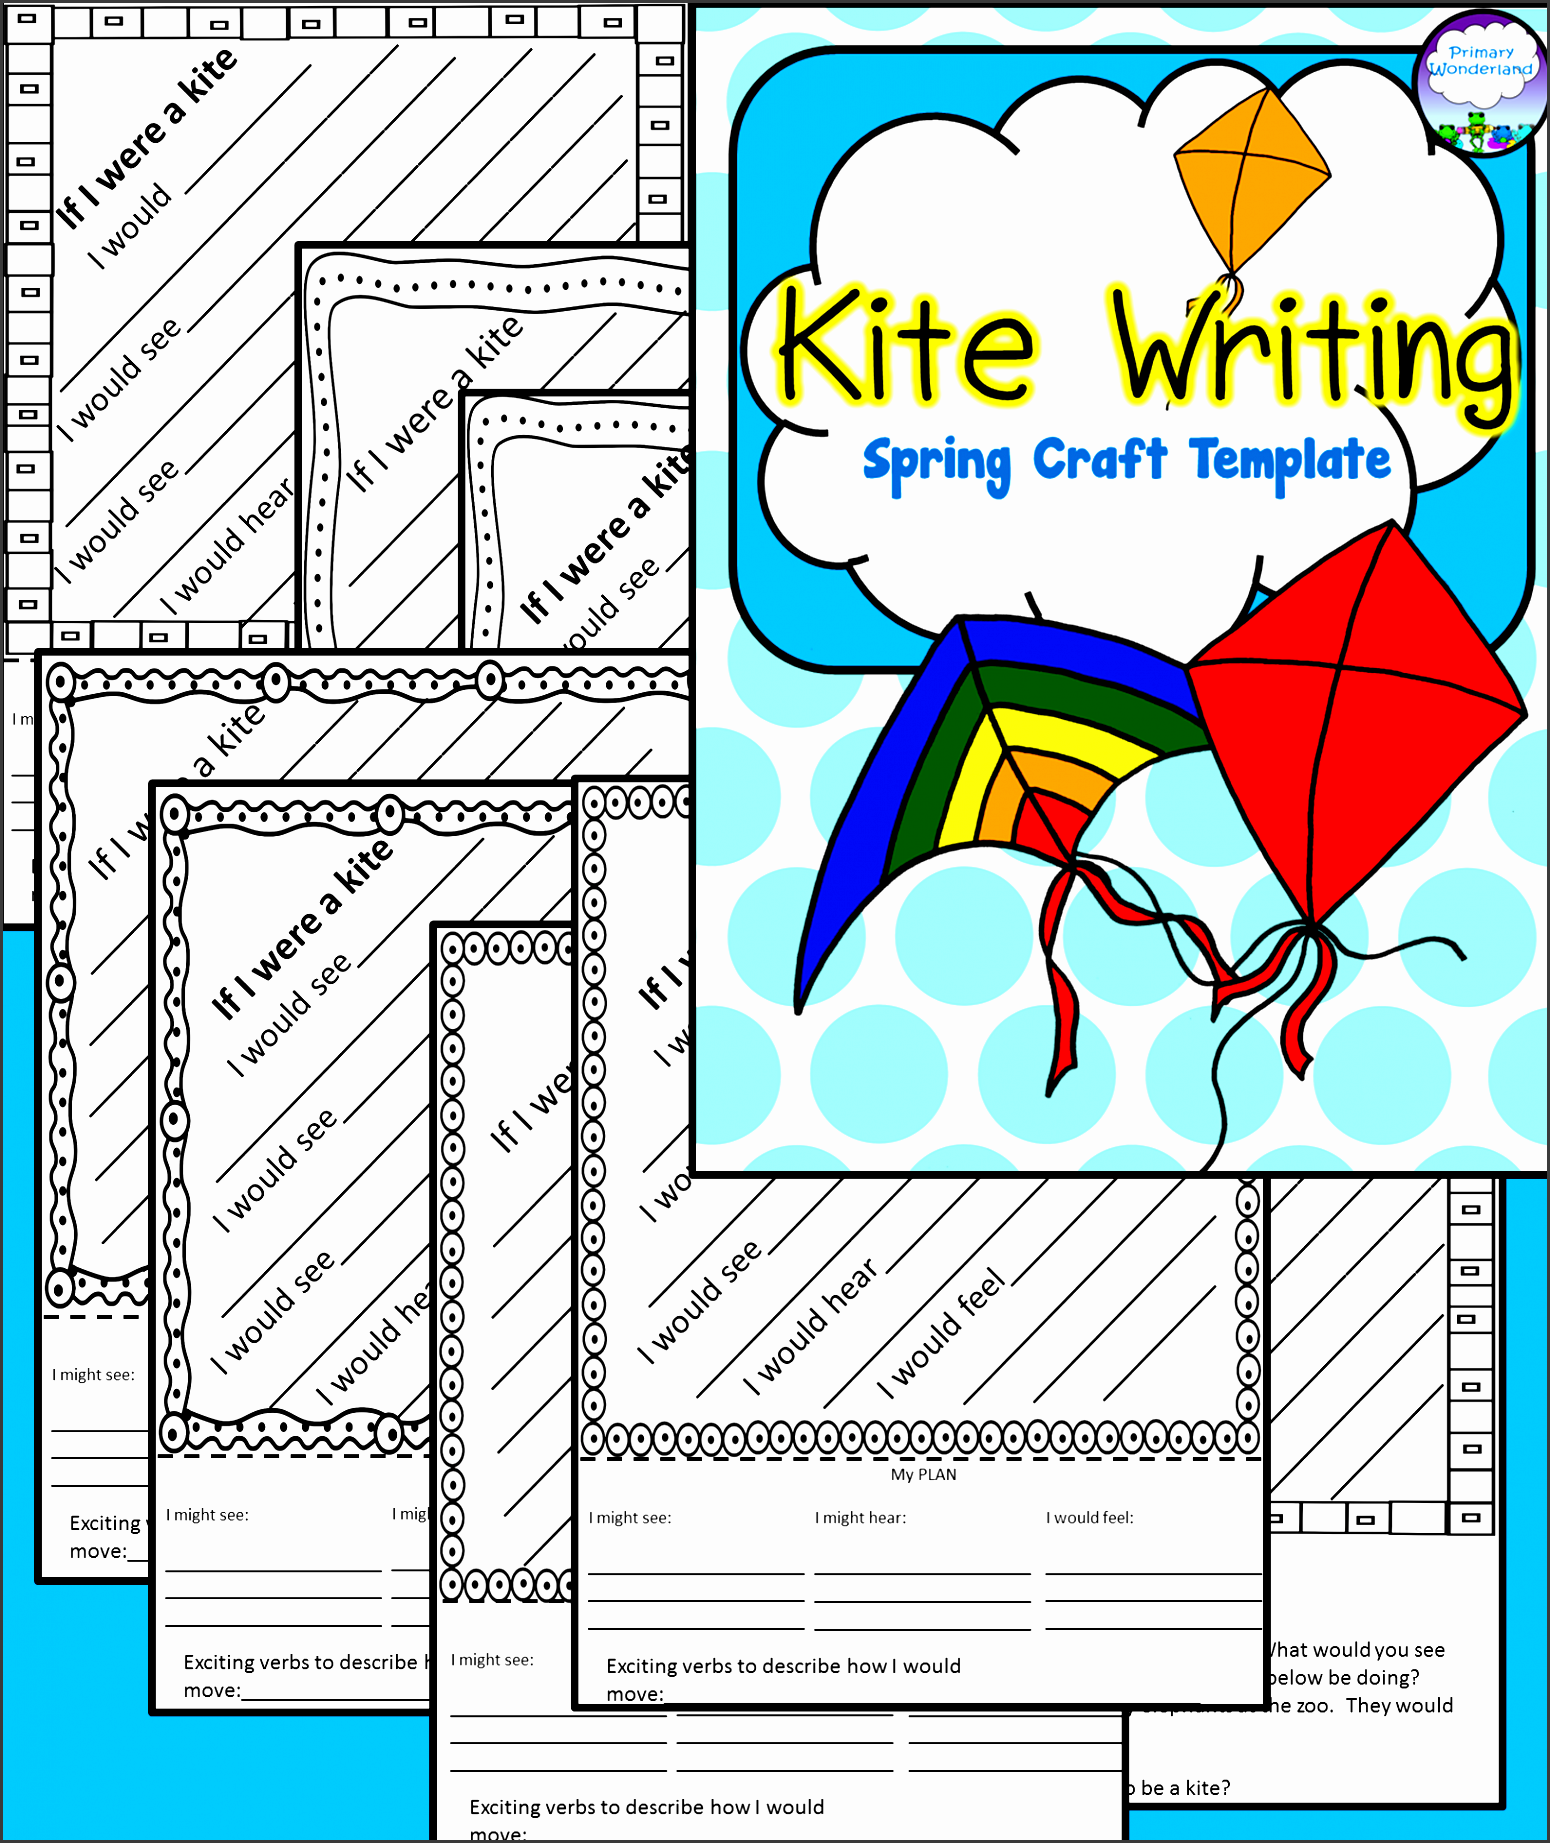 an abundance of kite templates with directions for a beautiful tail that stays floating in the